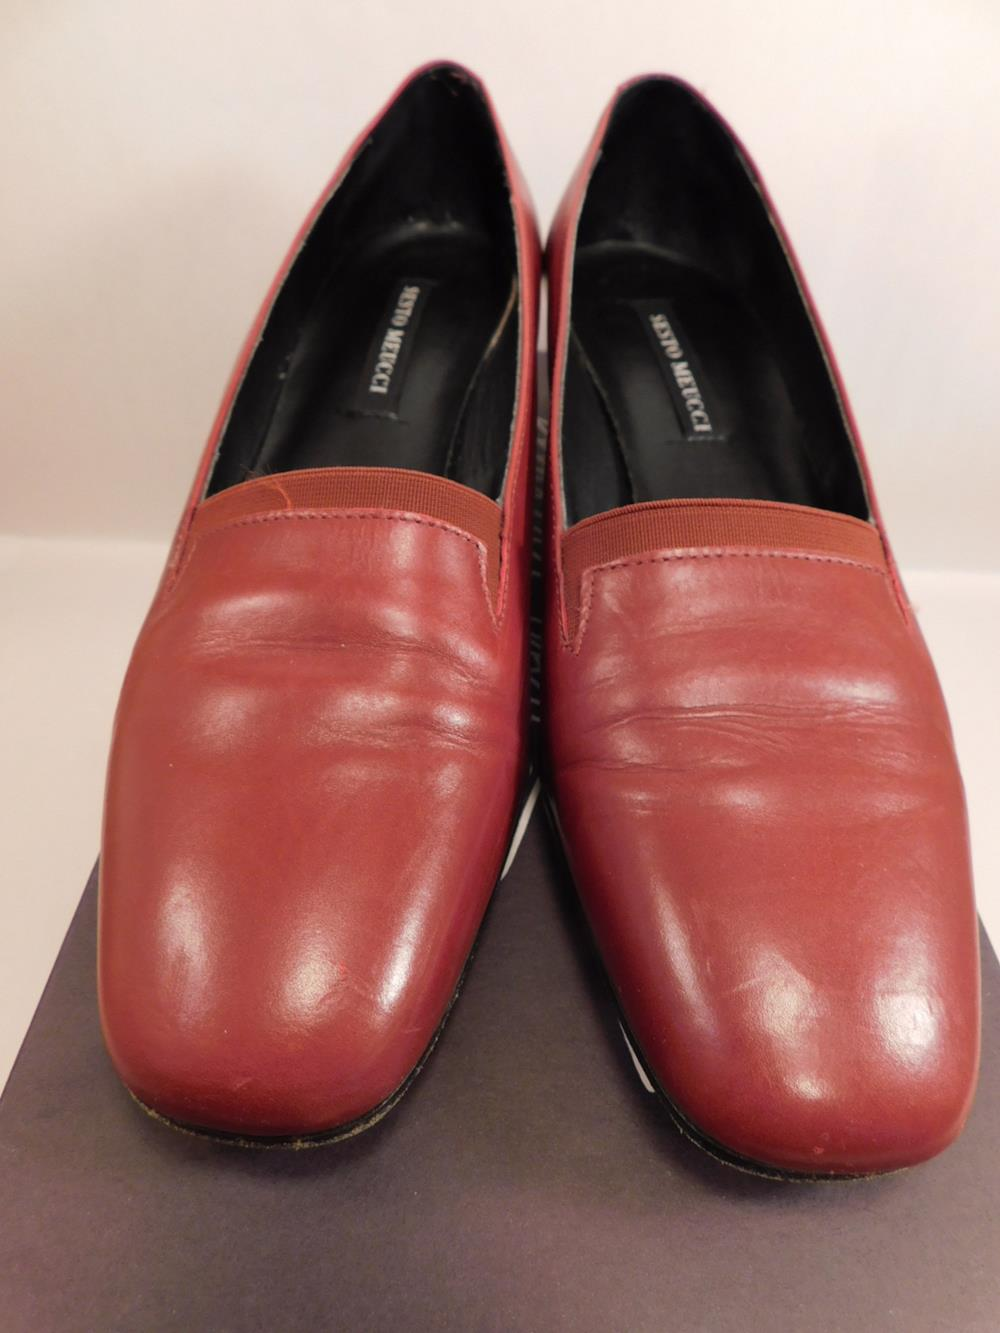 SESTO MEUCCI OF FLORENCE MADE IN ITALY SHOESEVELYN DKRED CALF SIZE 7.5 S WOMENS SHOE